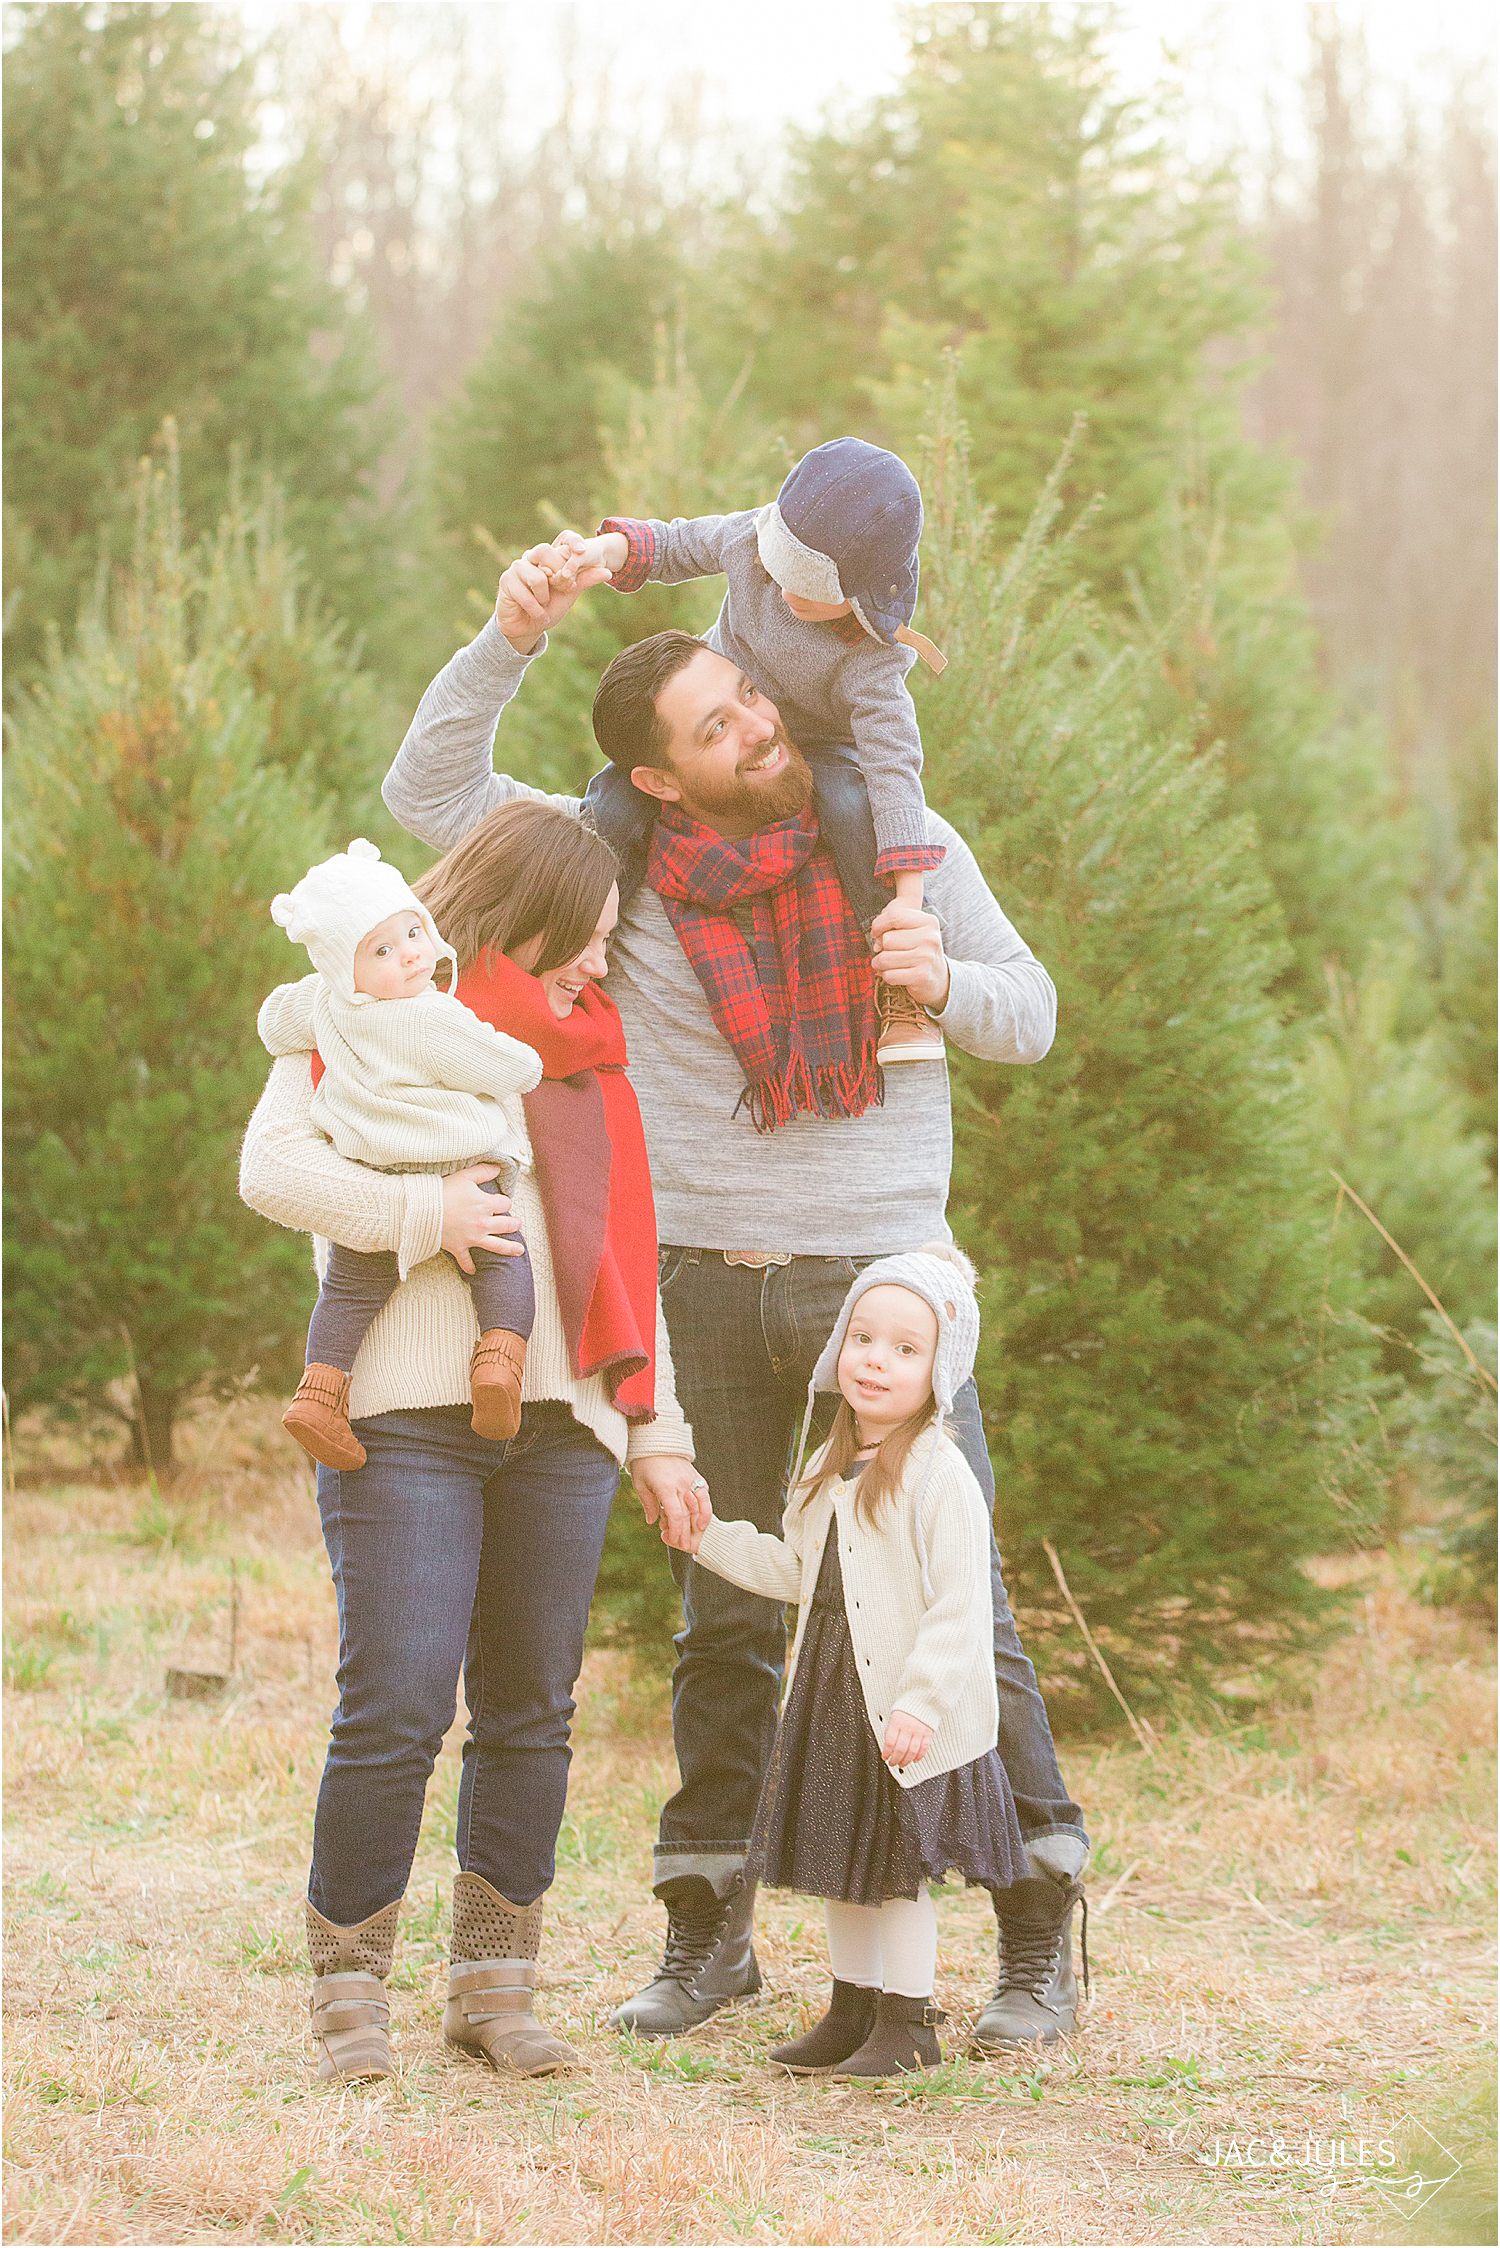 December 1 or 8 - A cozy session with warm apple cider, sweaters and blankets at a tree farm in New Egypt.15 min session includes 5 digital images for $350